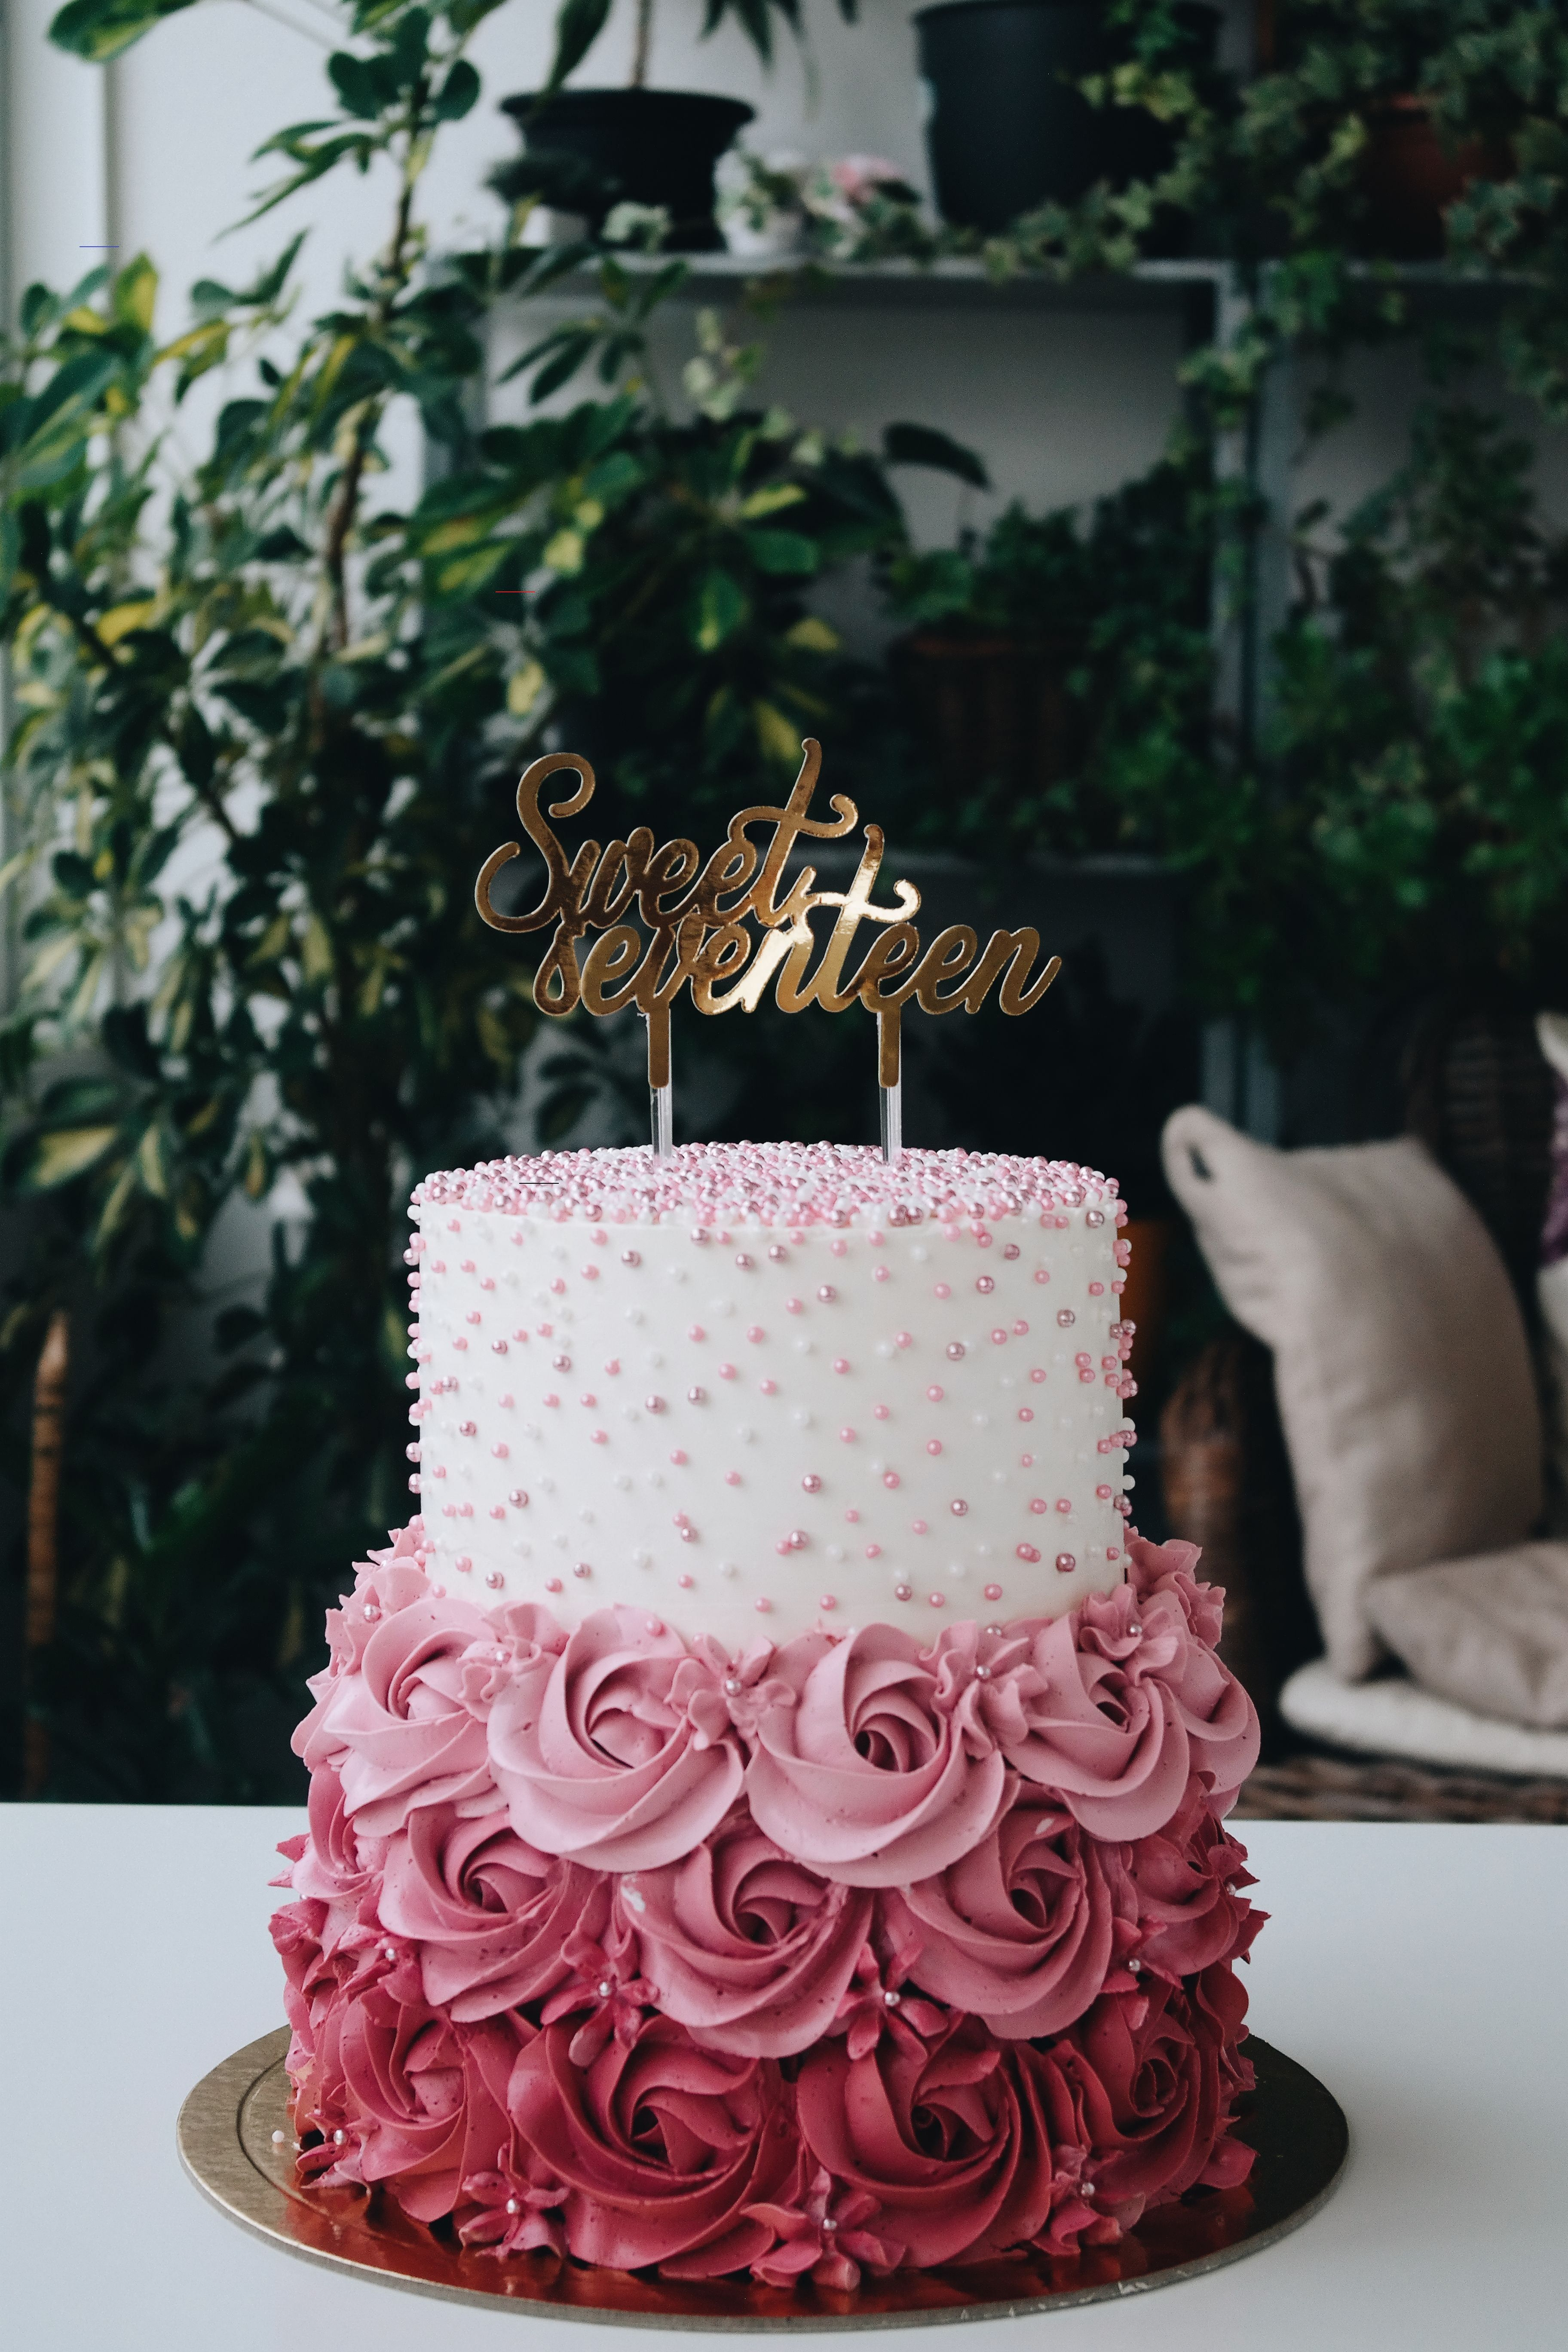 #cakedesigns in 2020 | Sweet 16 birthday cake, 16th ...